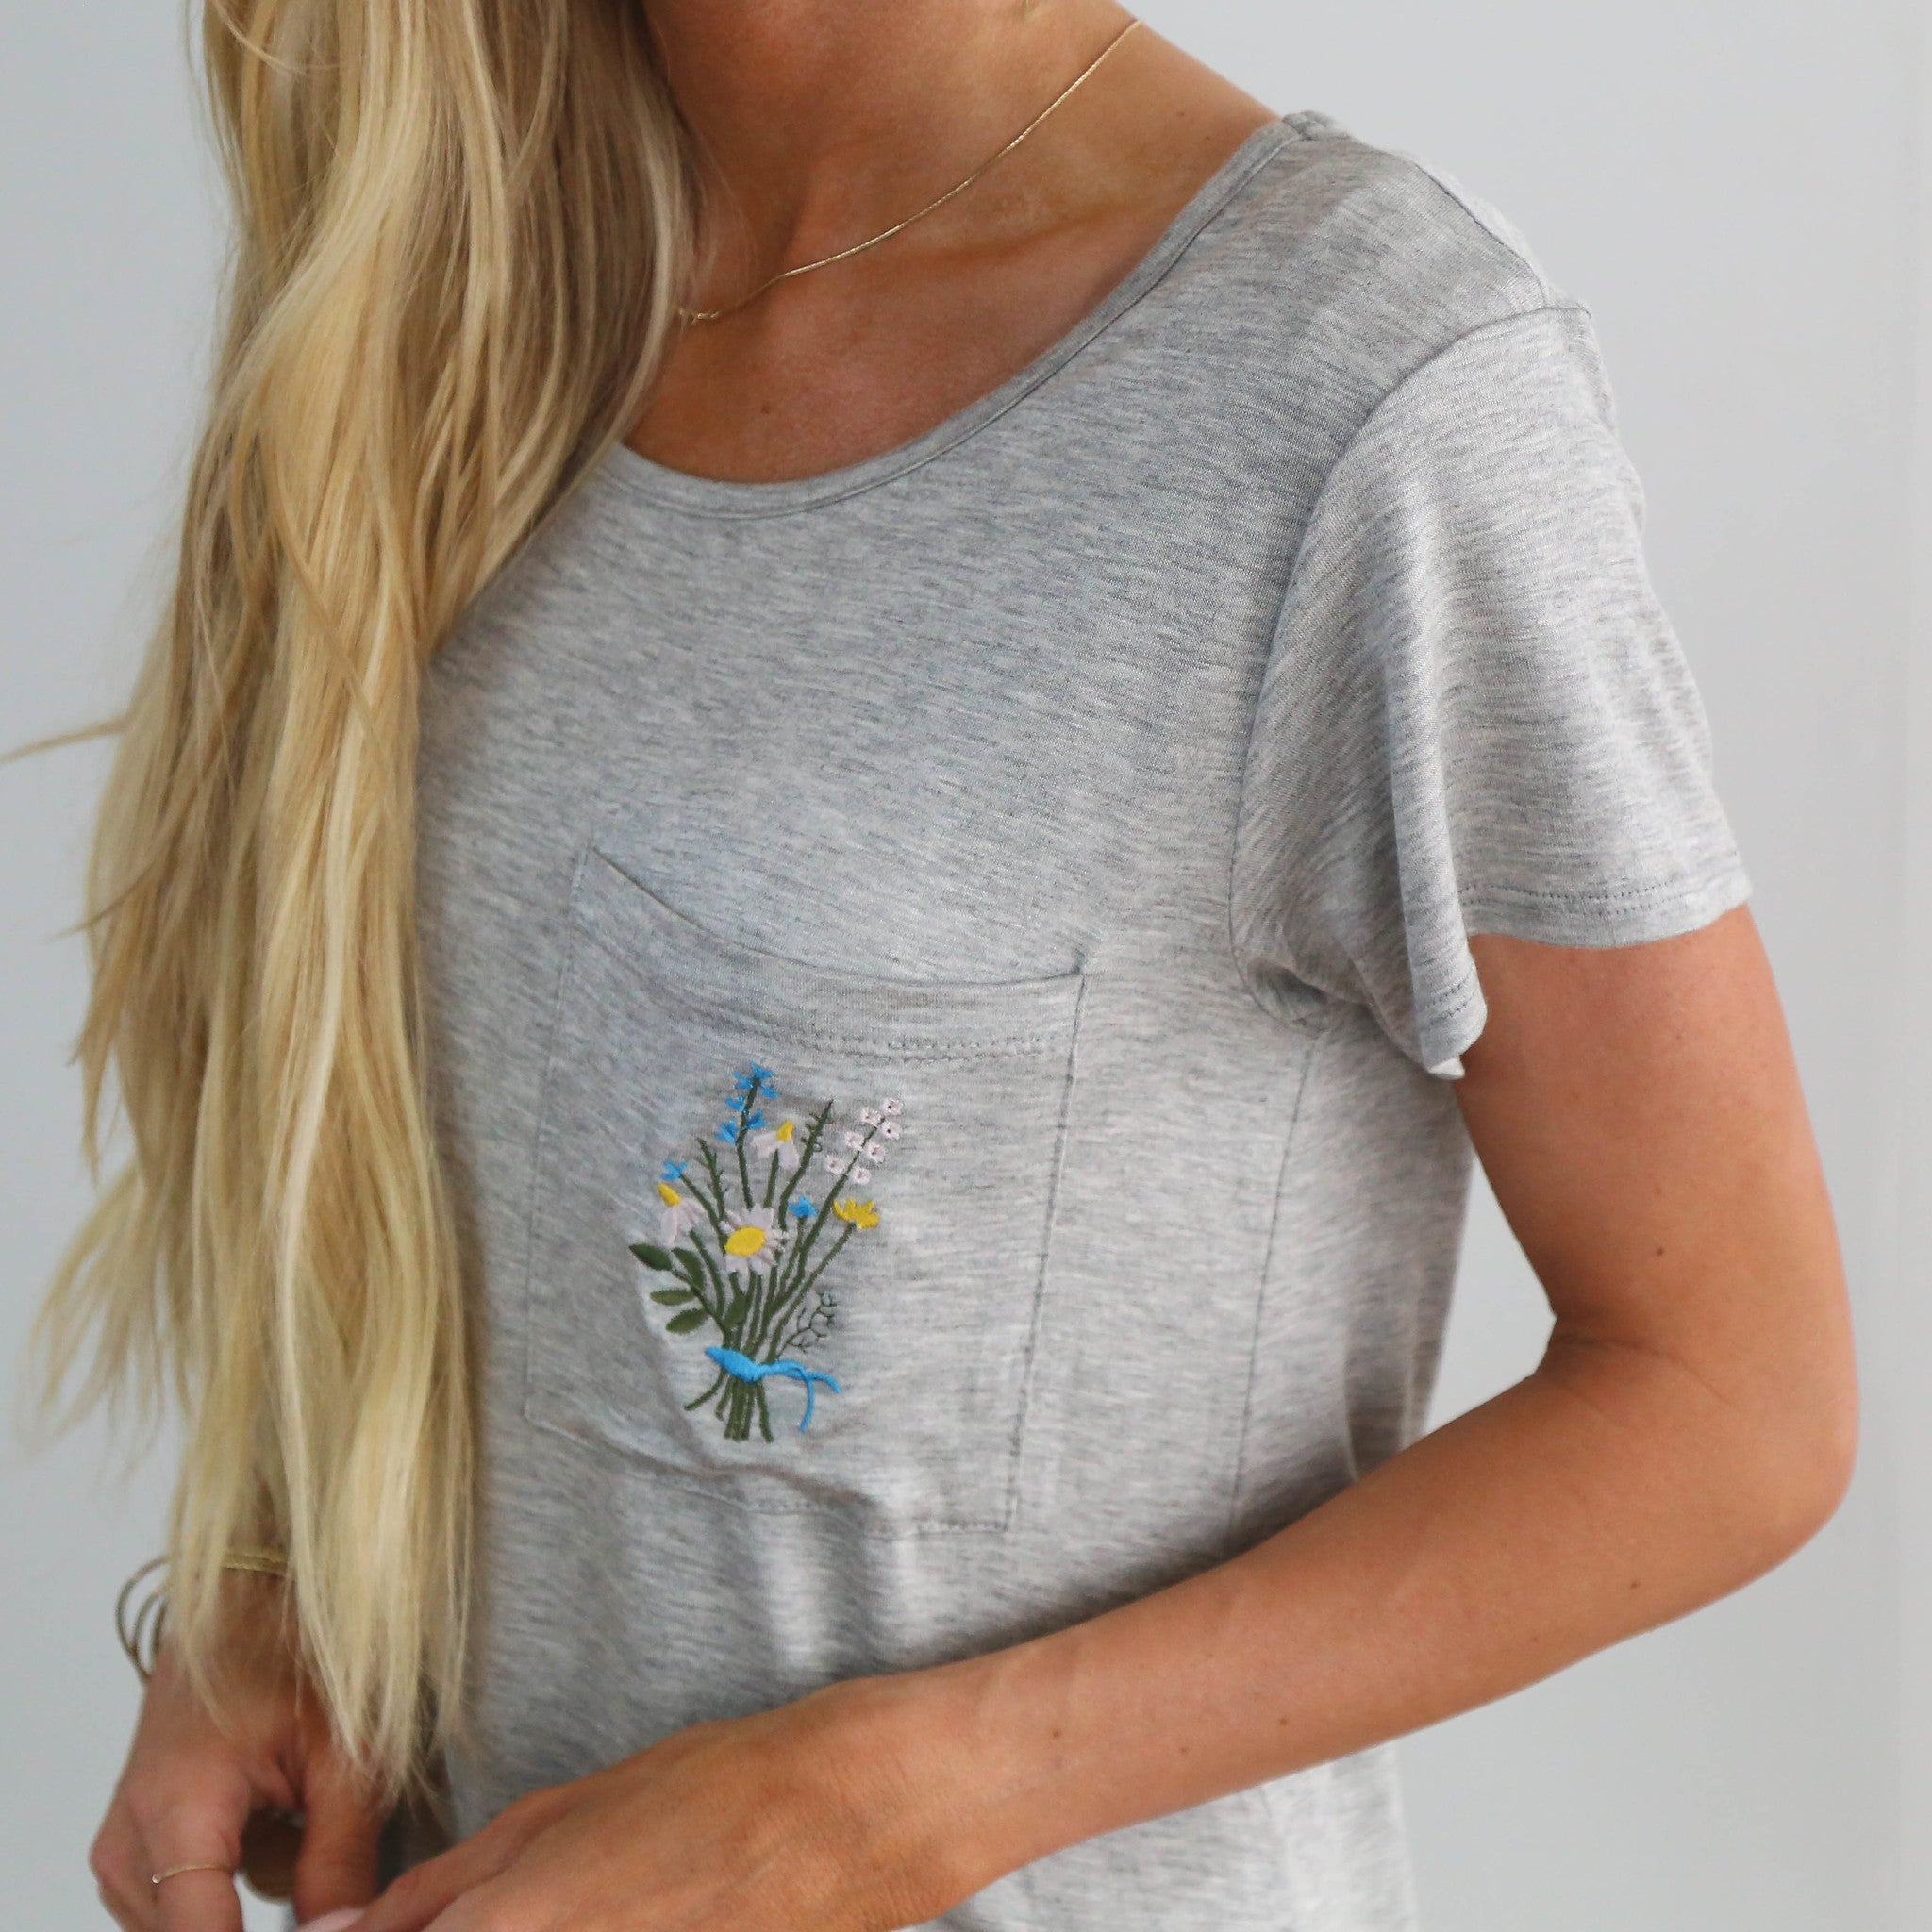 S & Co. Embroidered Pocket Tee